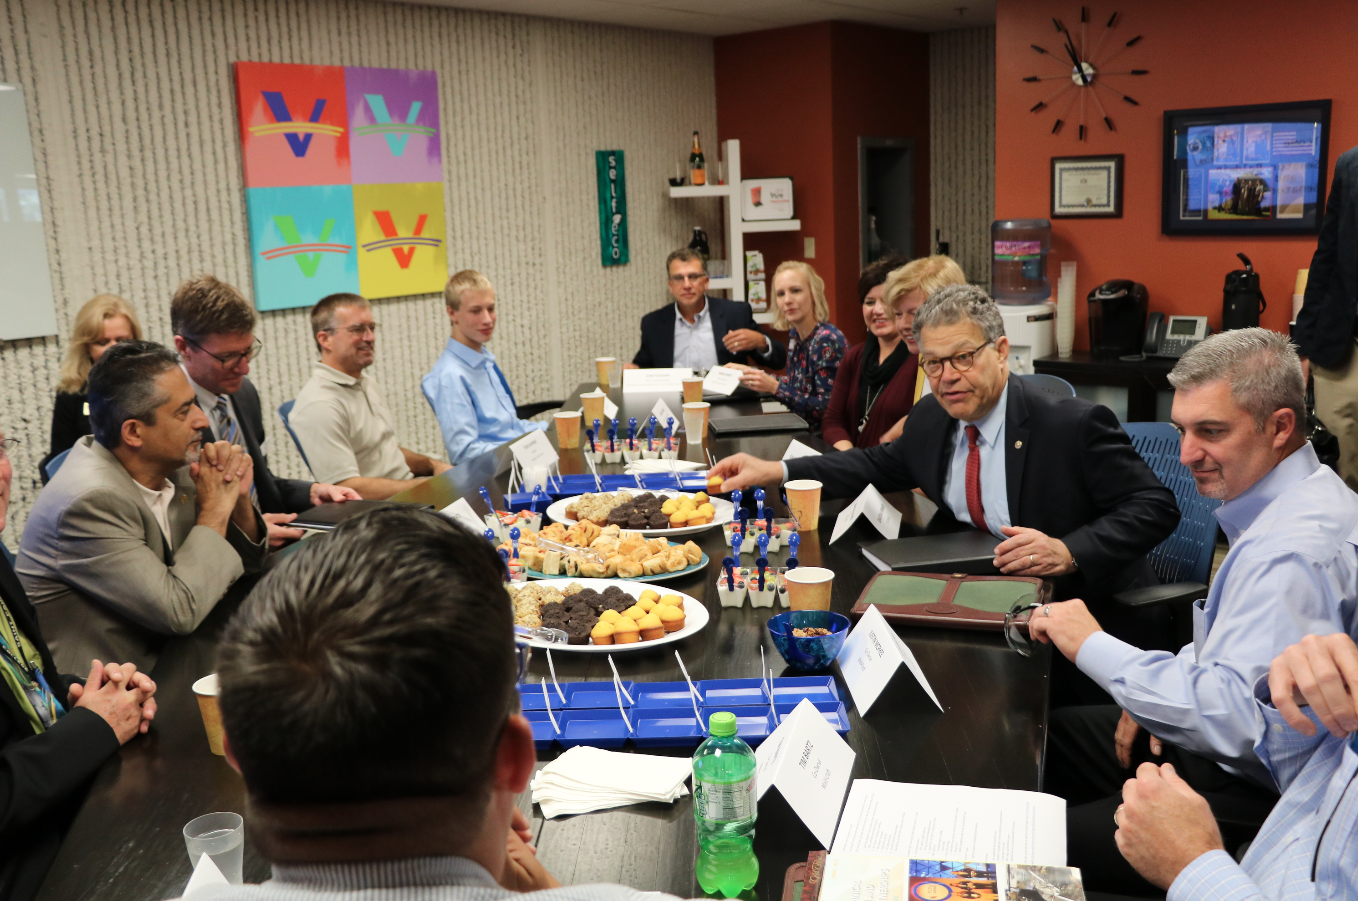 Senators Al Franken and Tammy Baldwin sit down with ambassadors from Minnesota and Wisconsin to discuss the workforce gap in manufacturing.